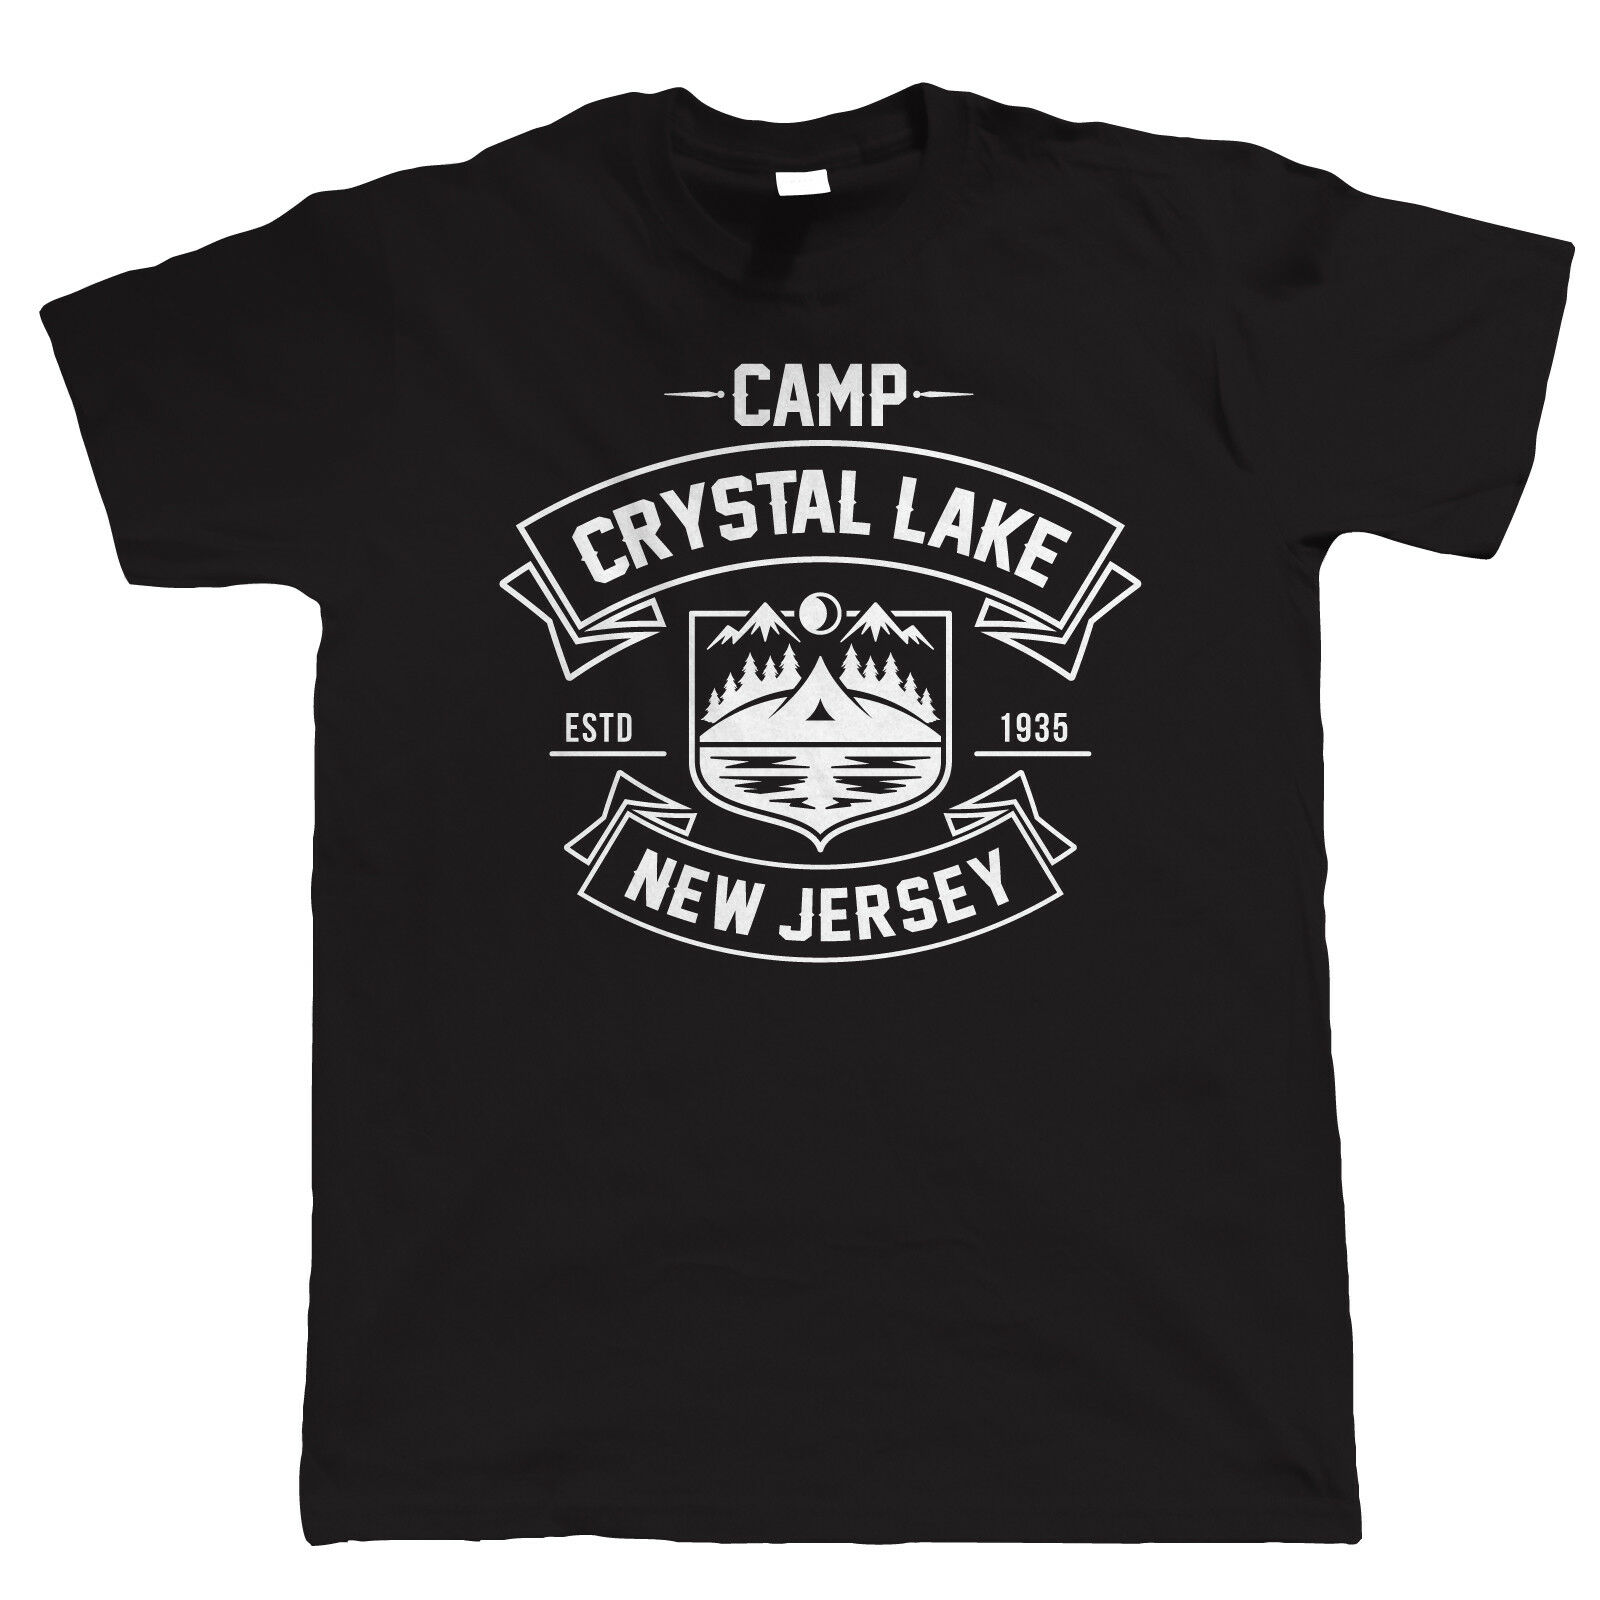 Camp Crystal Lake Mens Horror Movie T Shirt - Halloween Costume Fancy Dress 2019 New Fashion Summer Men'S Short T Shirts image